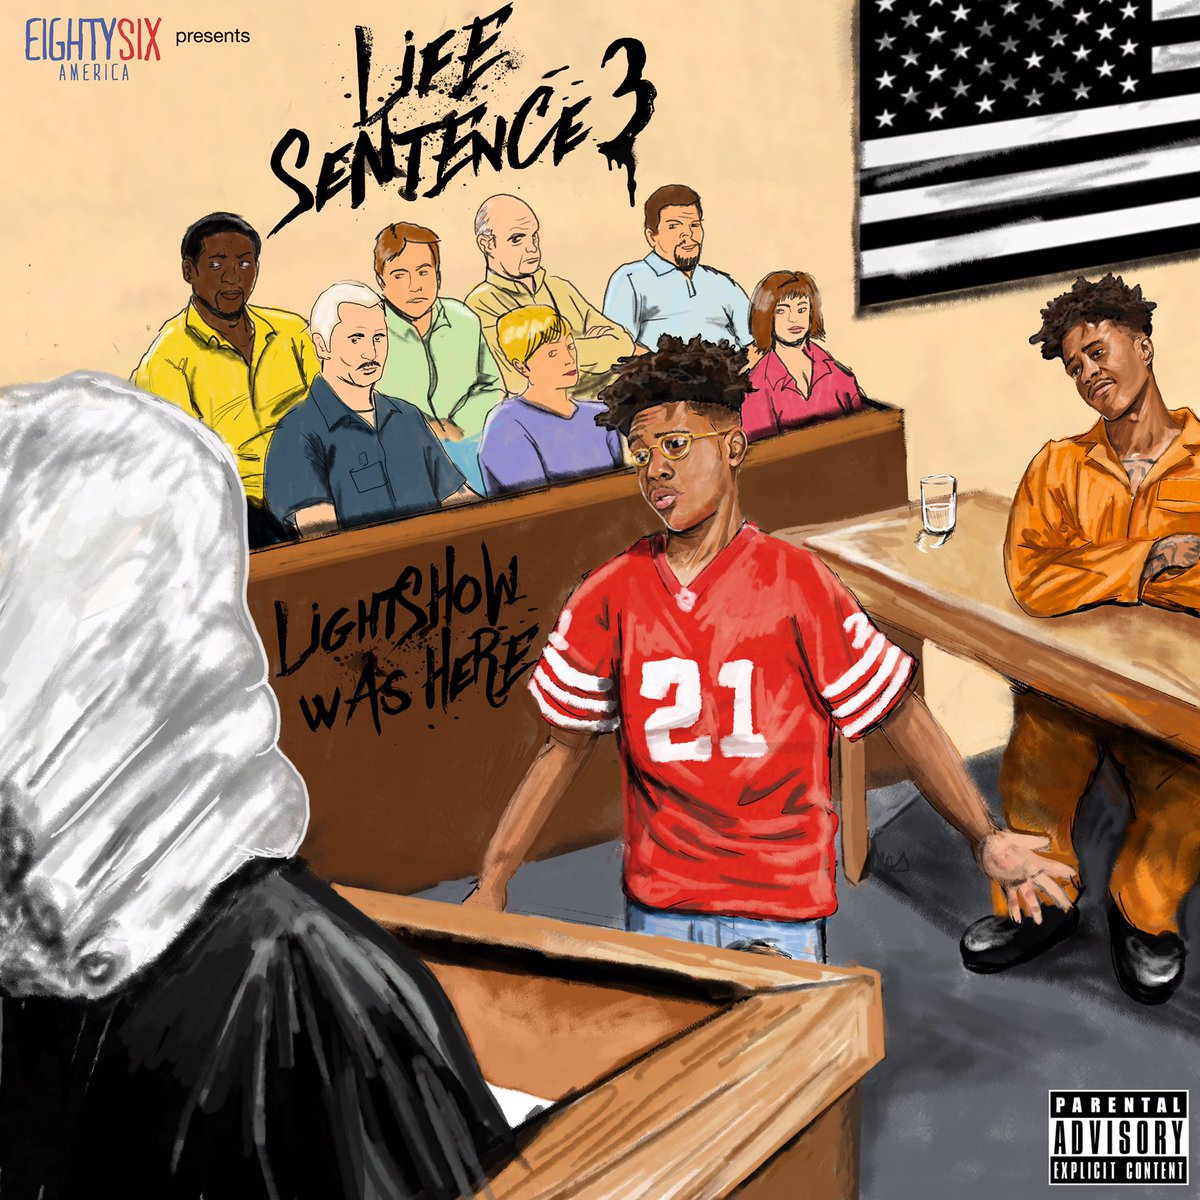 Listen to @Lightshow10thPL #LifeSentence3  out now!!!  https://t.co/iDGgc2ZCUG